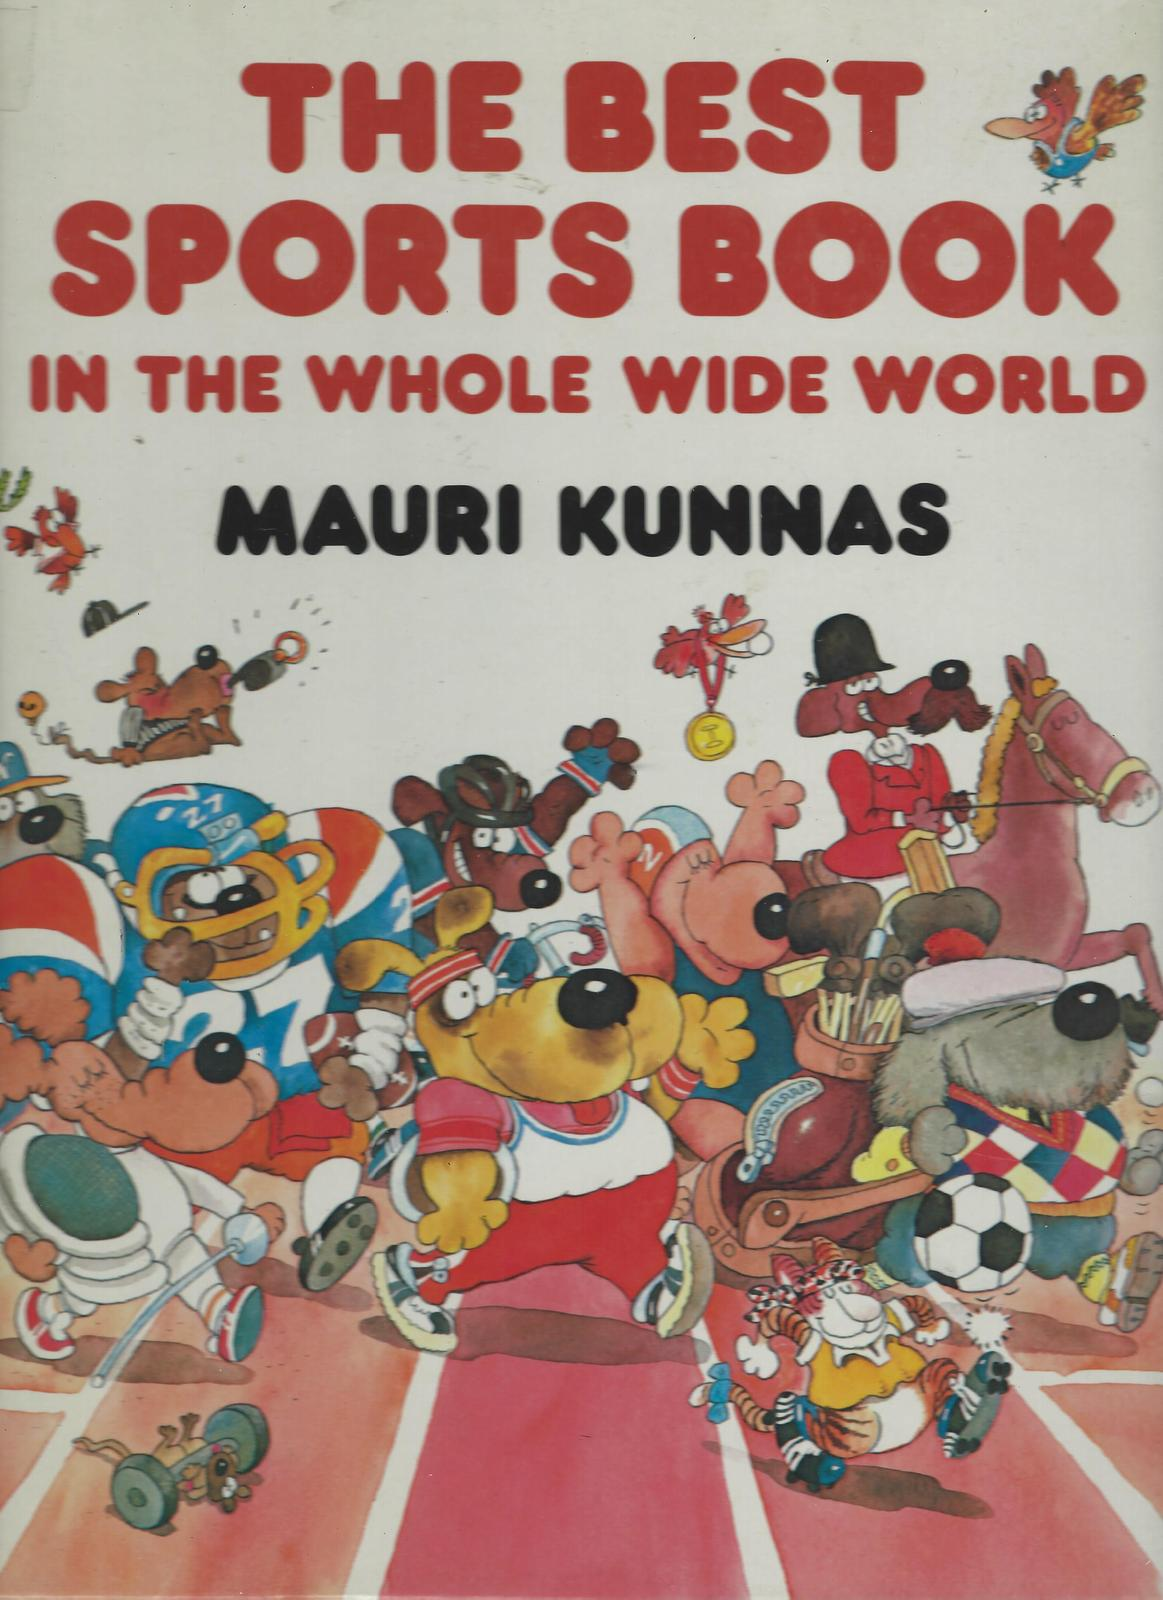 The best sports book 001